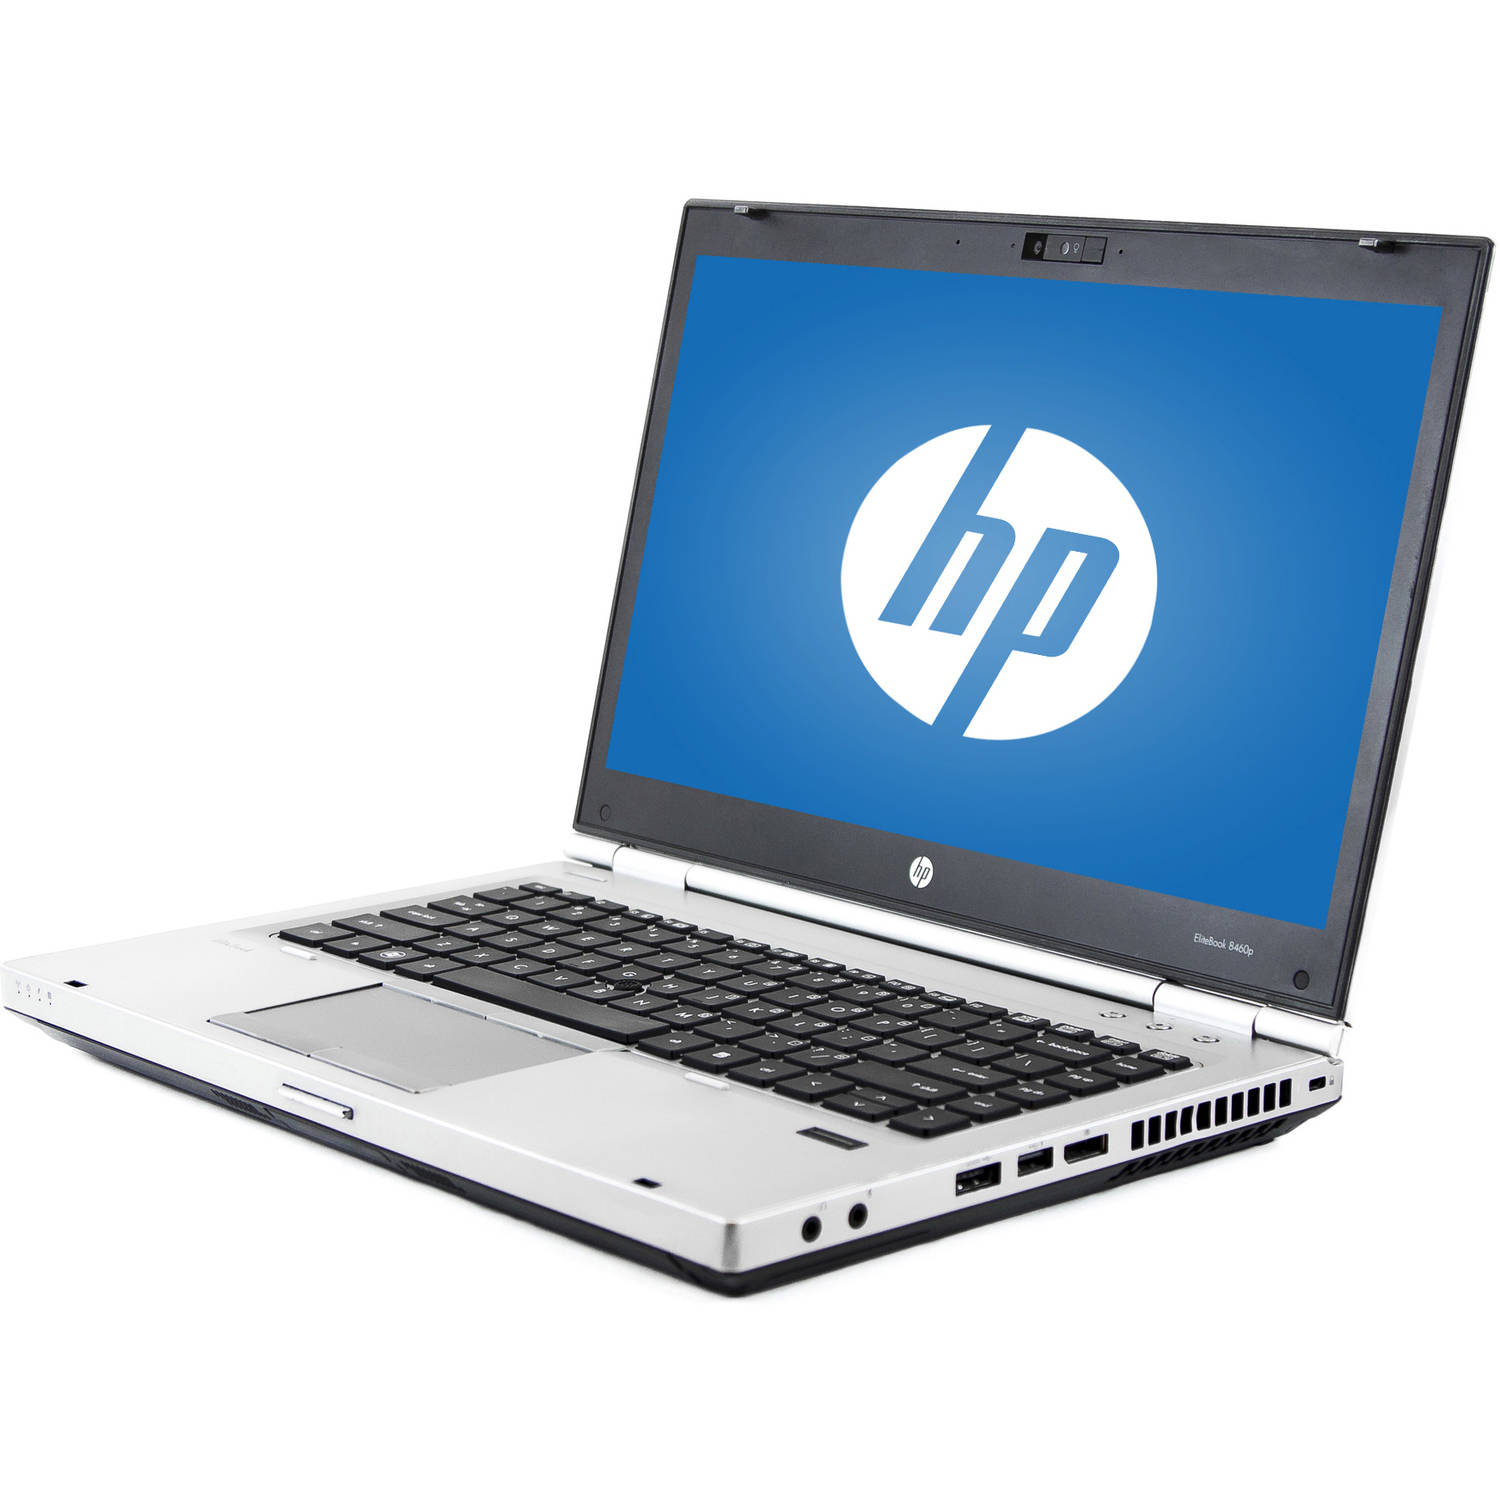 Refurbished HP 14 EliteBook 8460P Laptop PC with Intel Core i5 Processor, 4GB Memory, 750GB Hard Drive and Windows 10 Pro